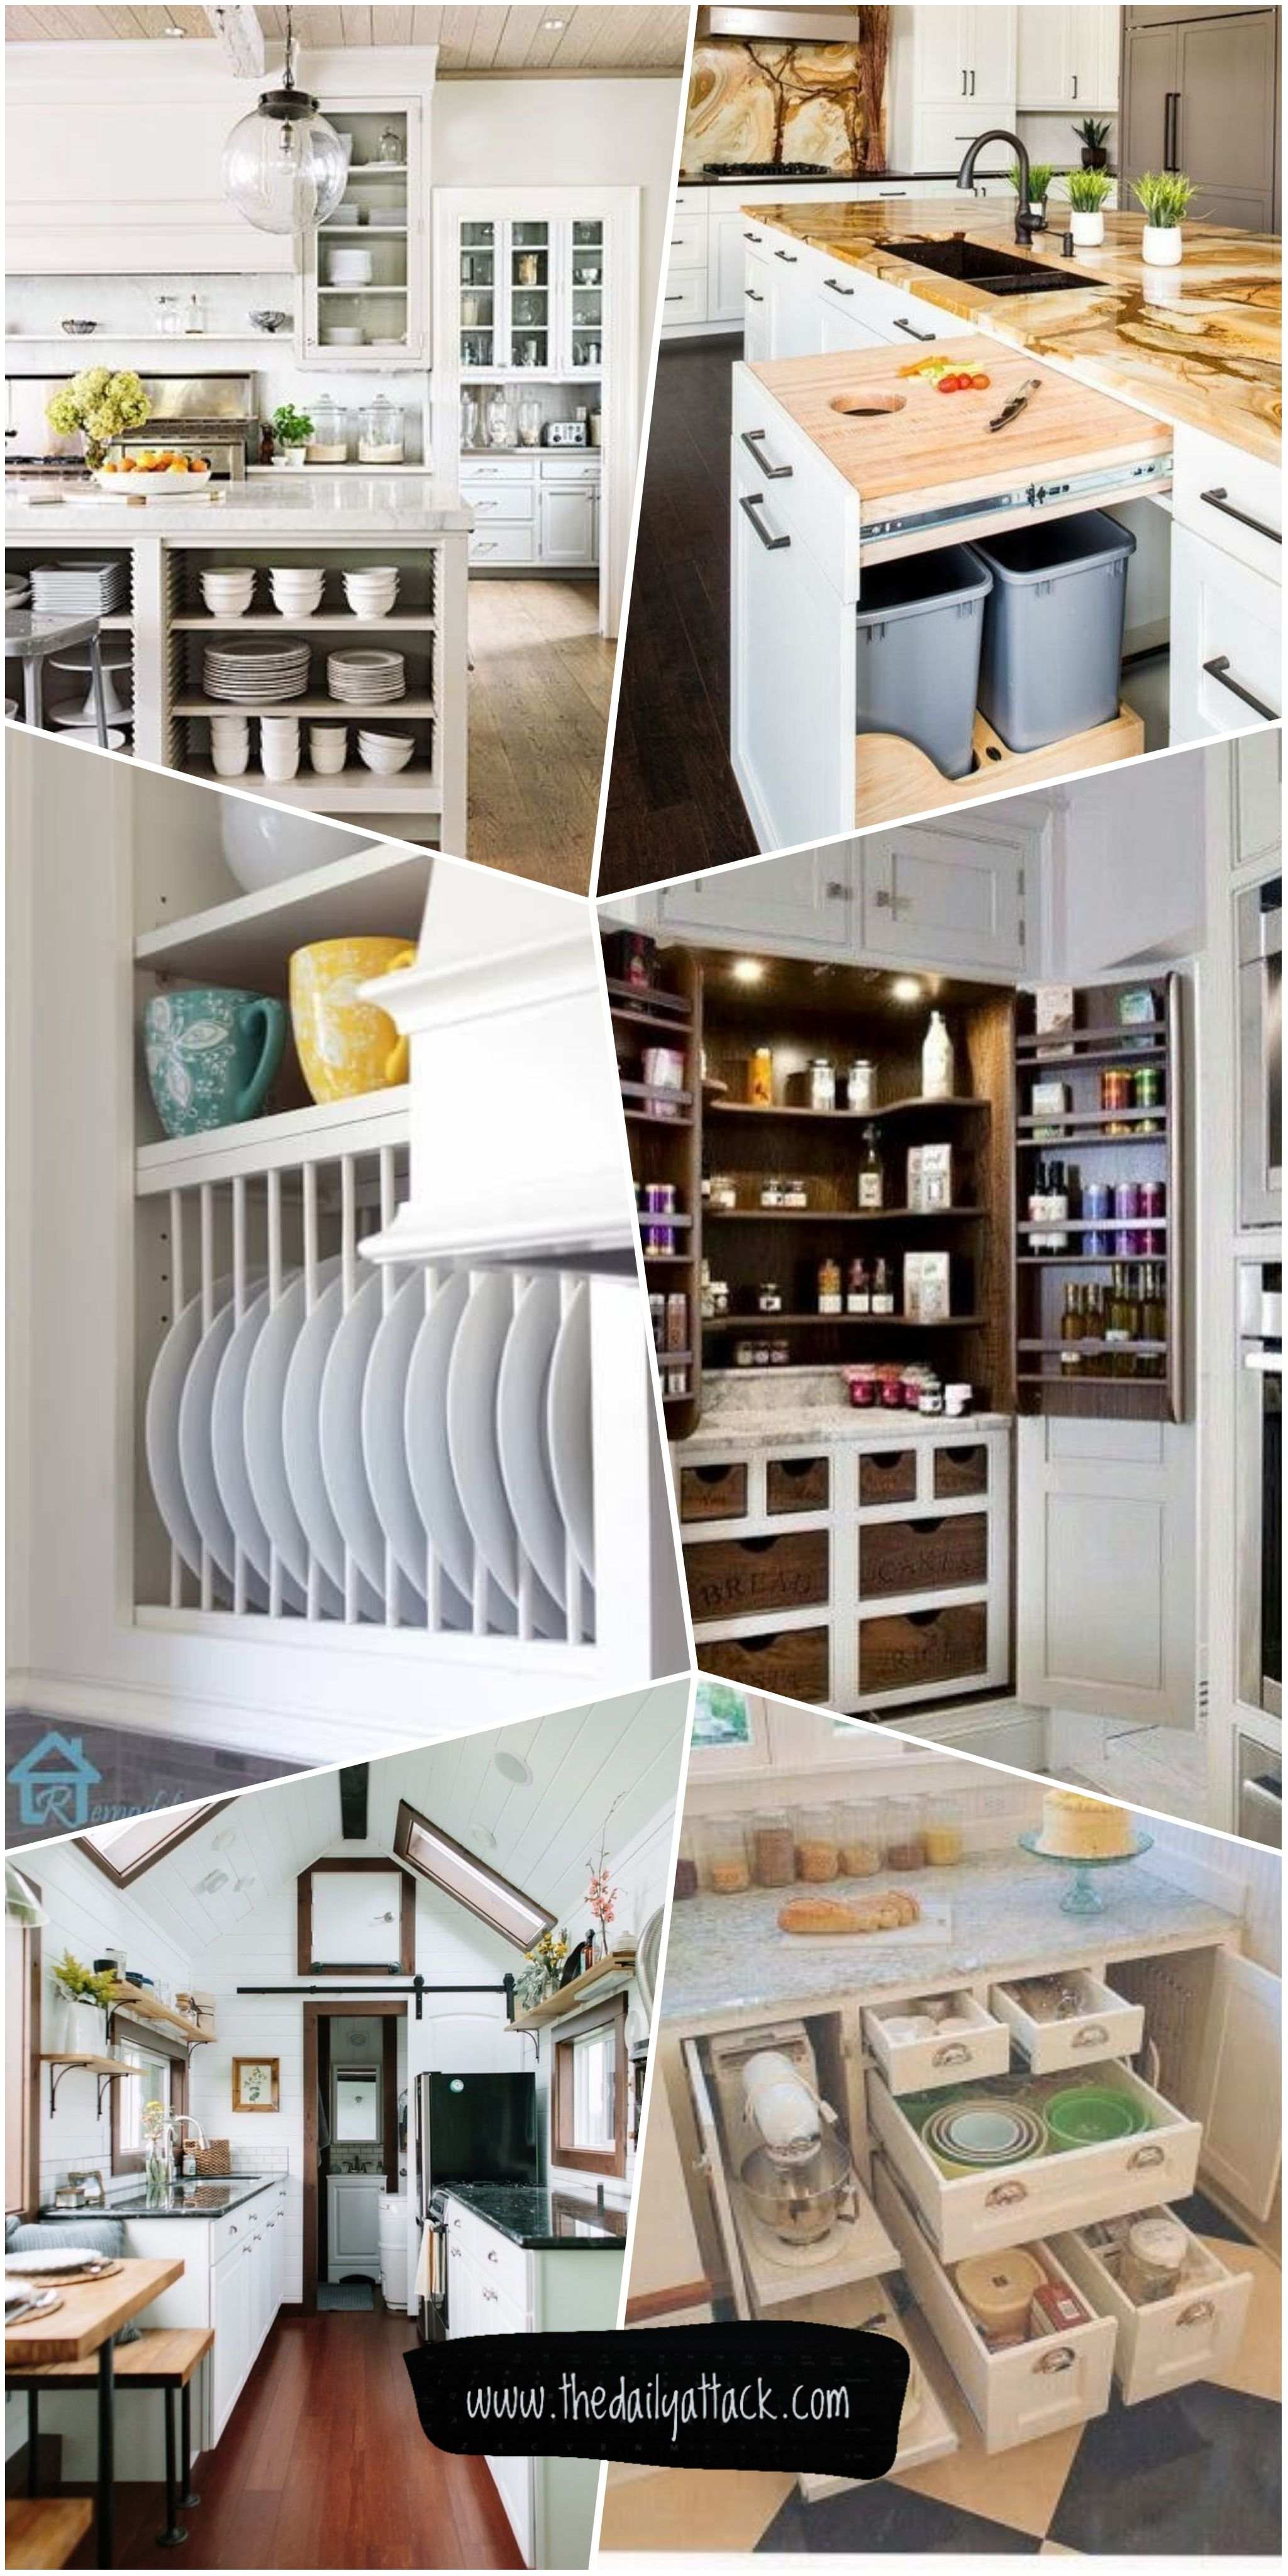 61 Unique Kitchen Storage Ideas Easy Storage Solutions For Your